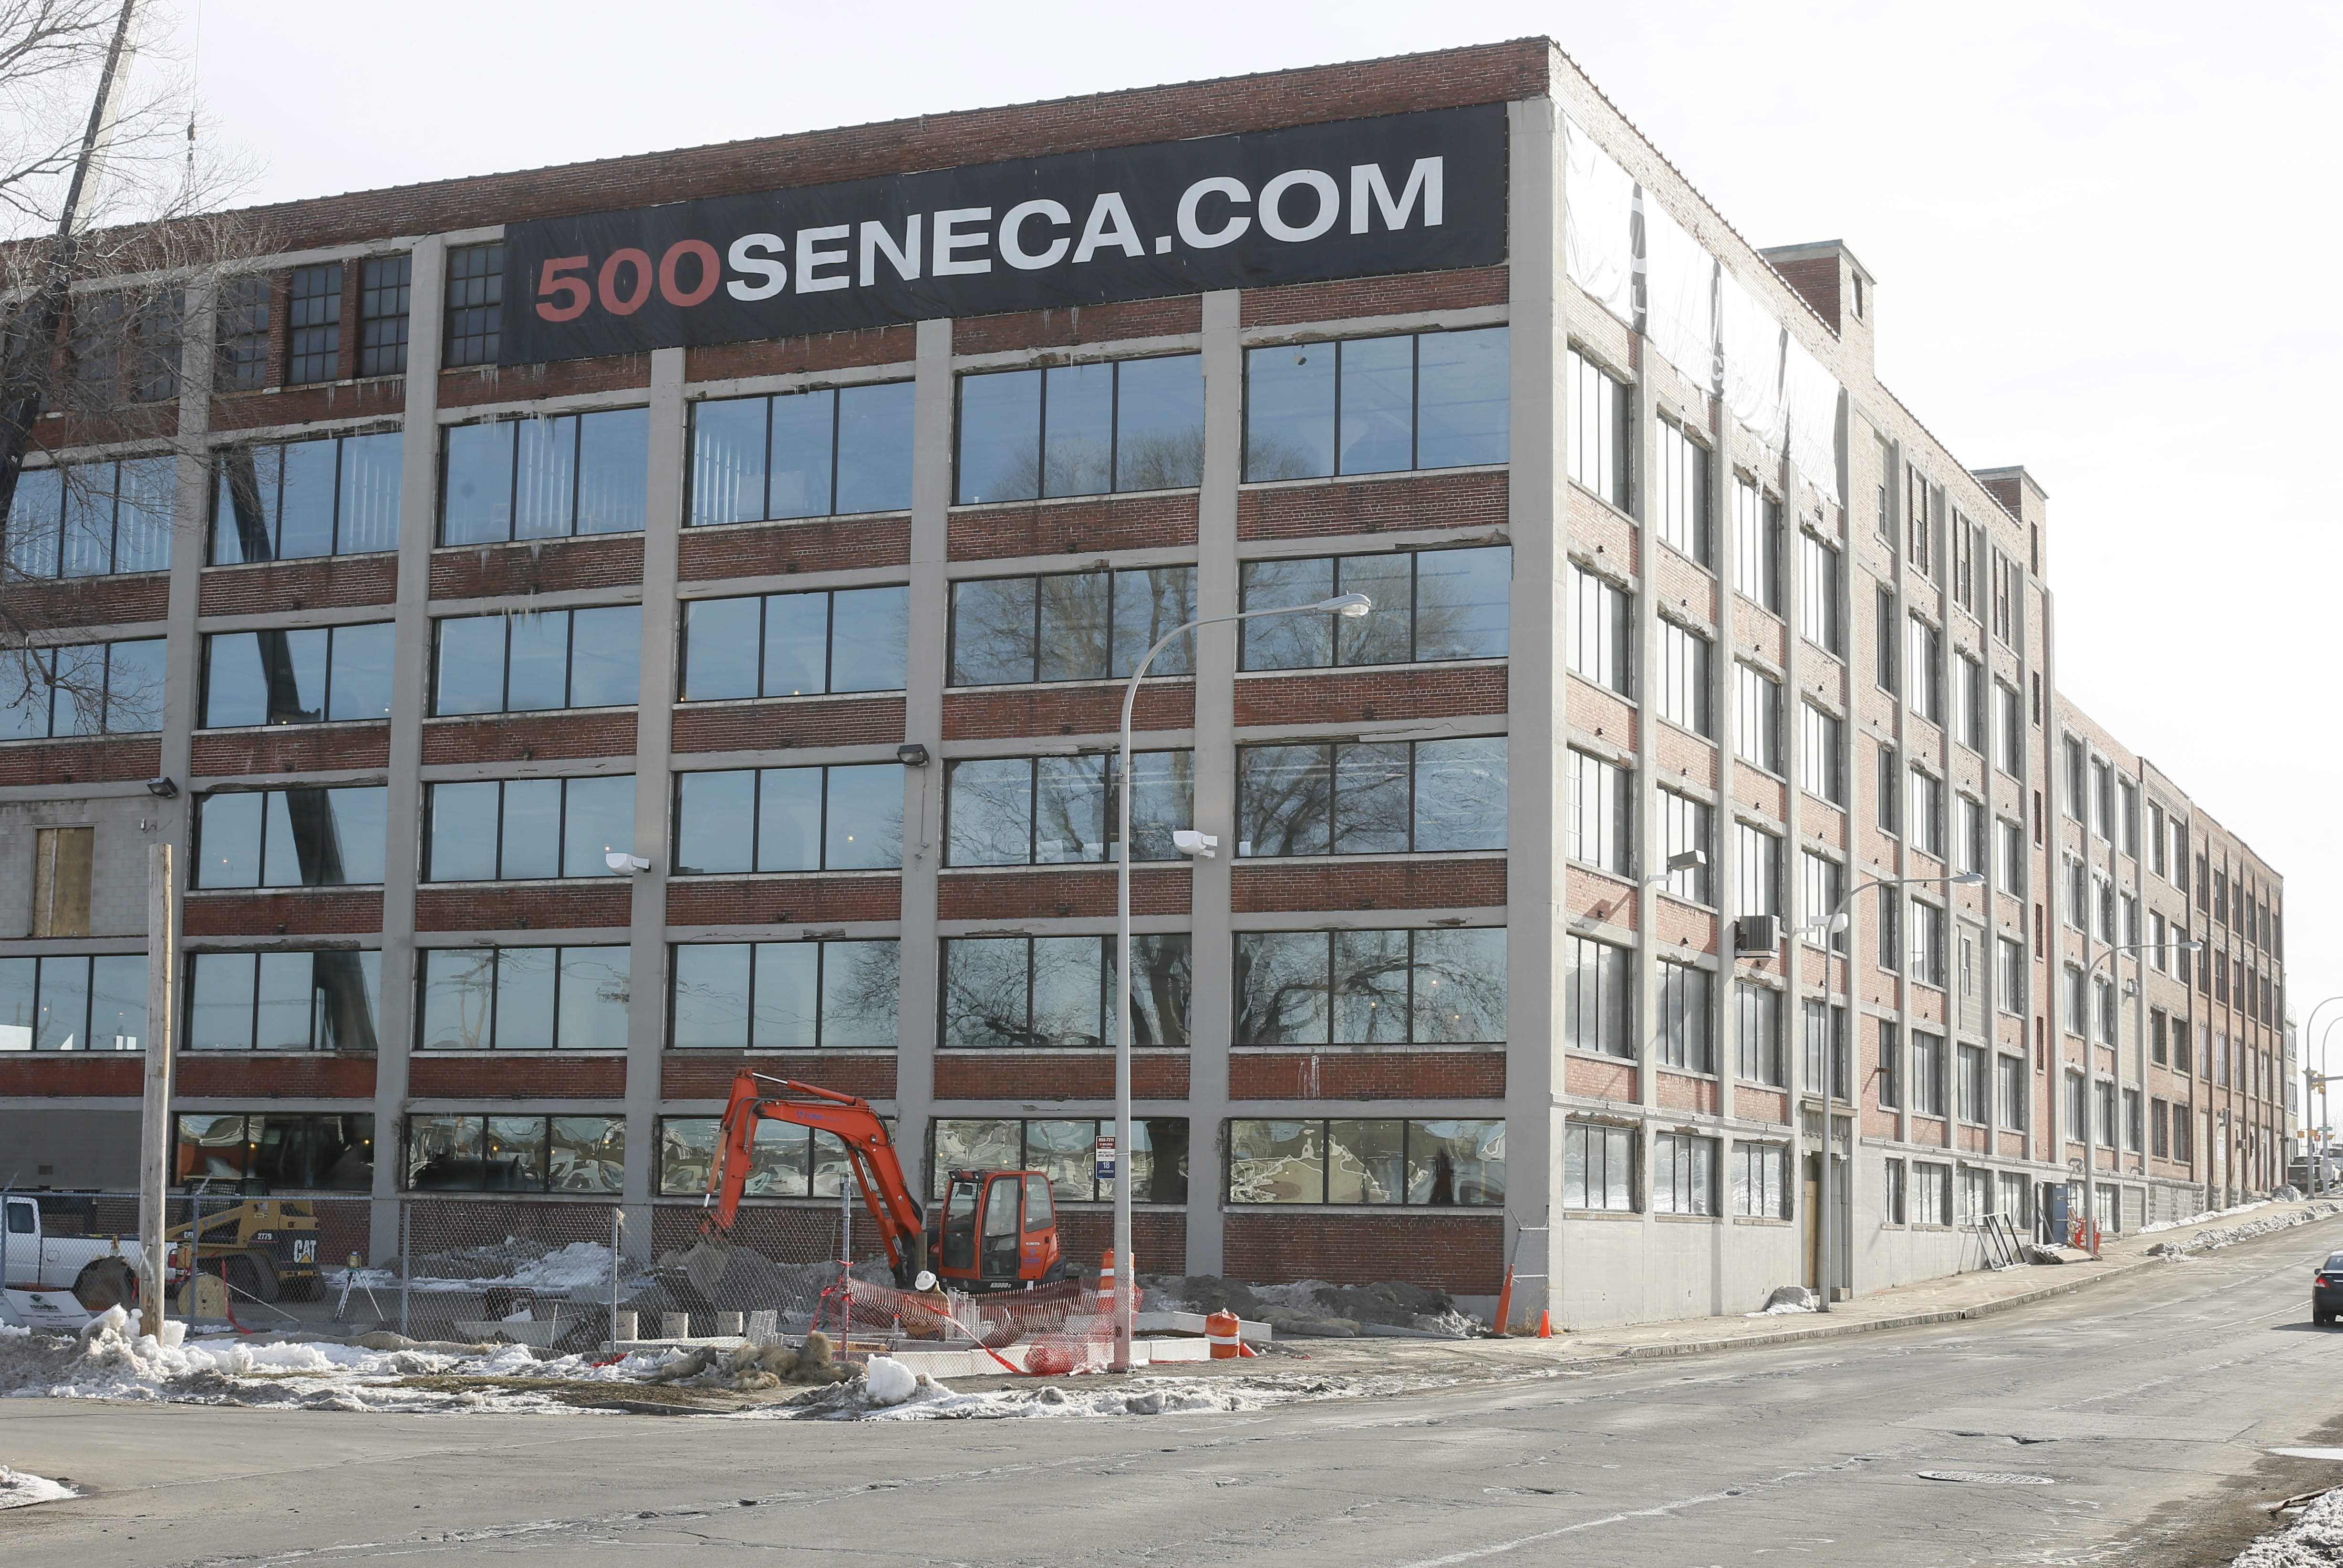 The former F.N. Burt factory at 500 Seneca St., which is being renovated into a mixed-use residential and commercial space, will receive an additional $370,000 in tax breaks. Nearly $1.2 million in incentives previously had been approved by the Erie County IDA.